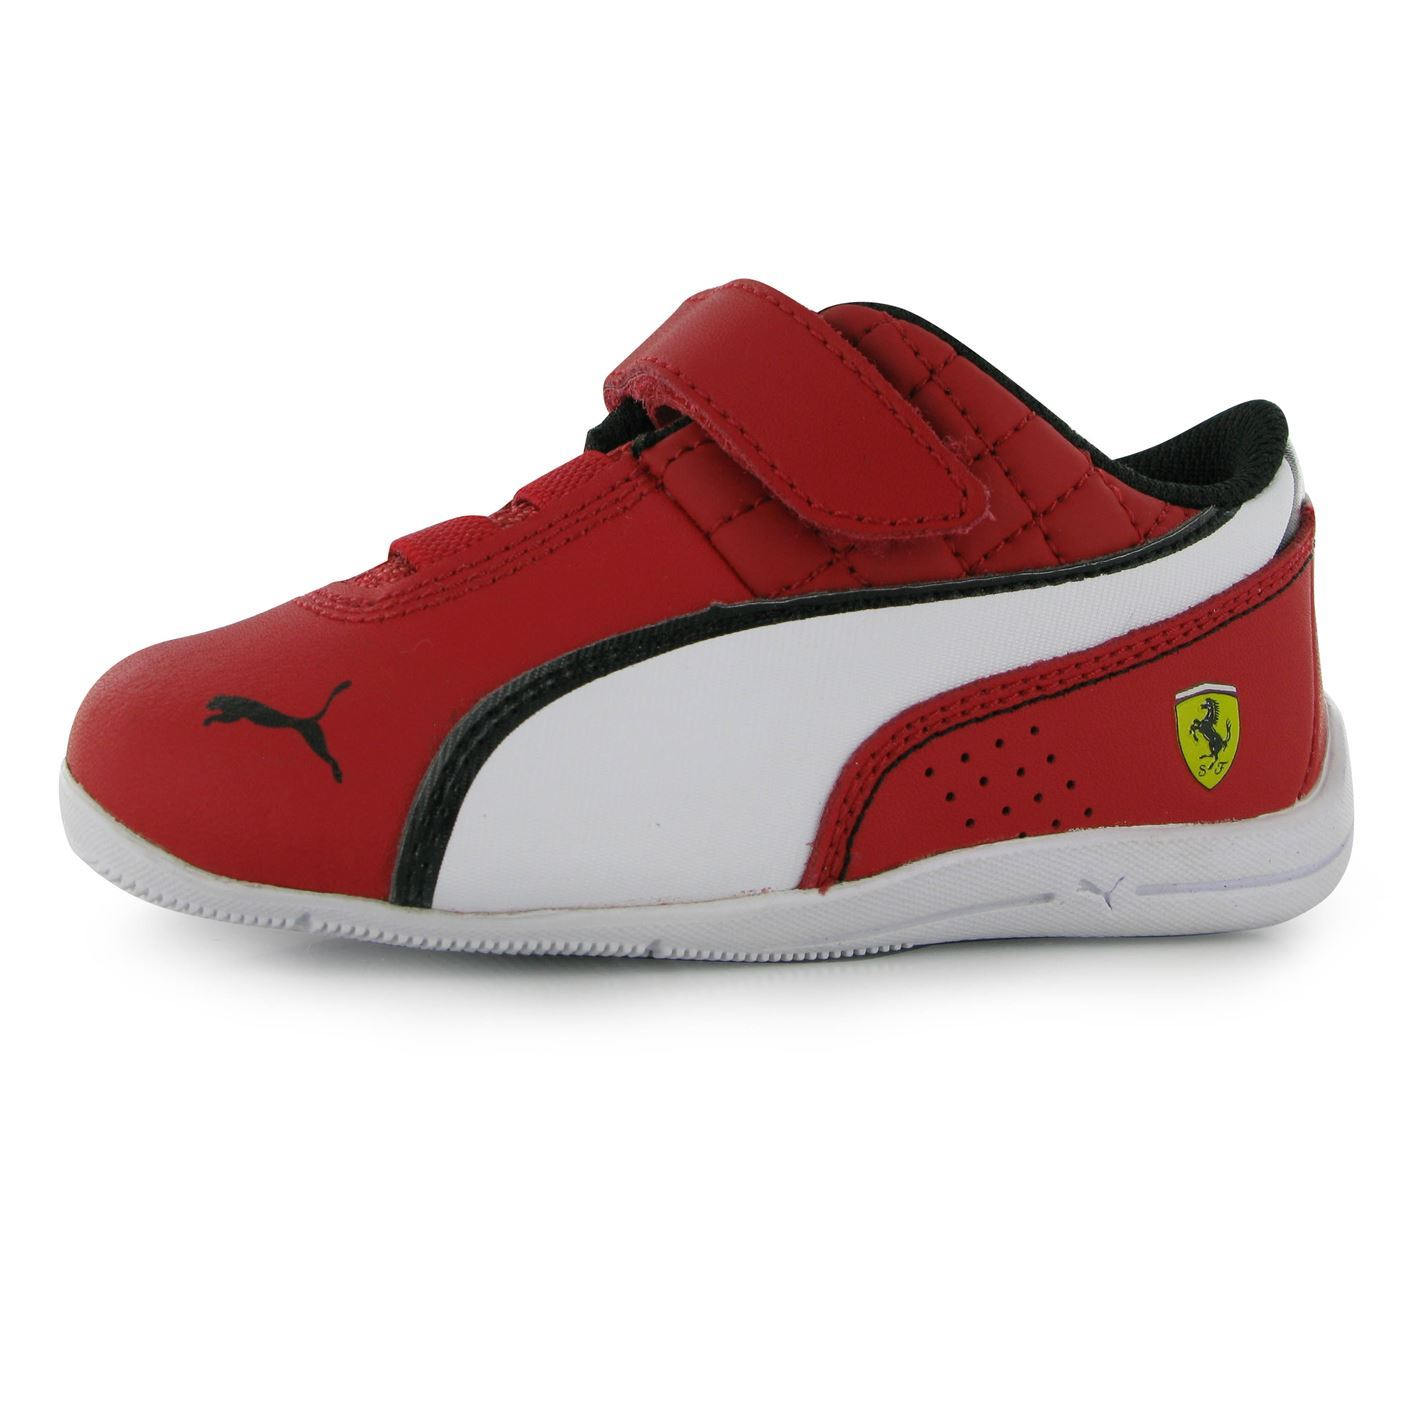 future p kids motorsportbest motorsport ferrari girls shoespuma puma discounted black cat prices shoes blackpuma trainers suede